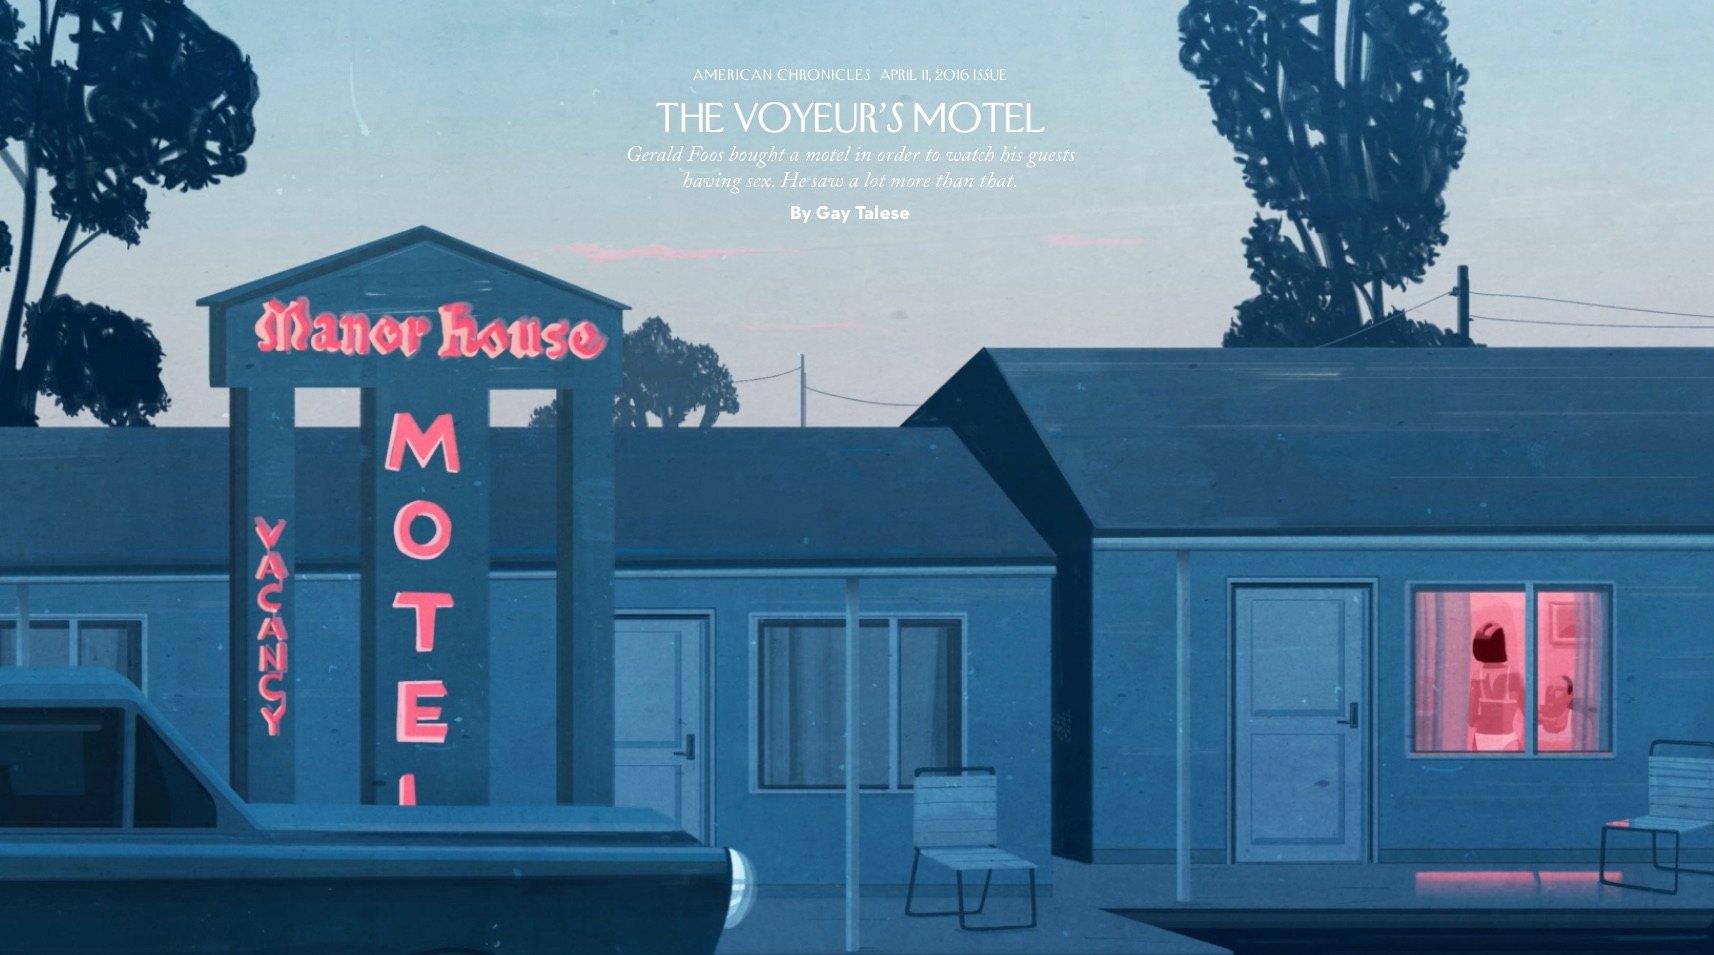 essays gerald foos bought a motel in order to watch his guests having sex he saw a lot more than that the new yorker s excerpt from gay talese s upcoming